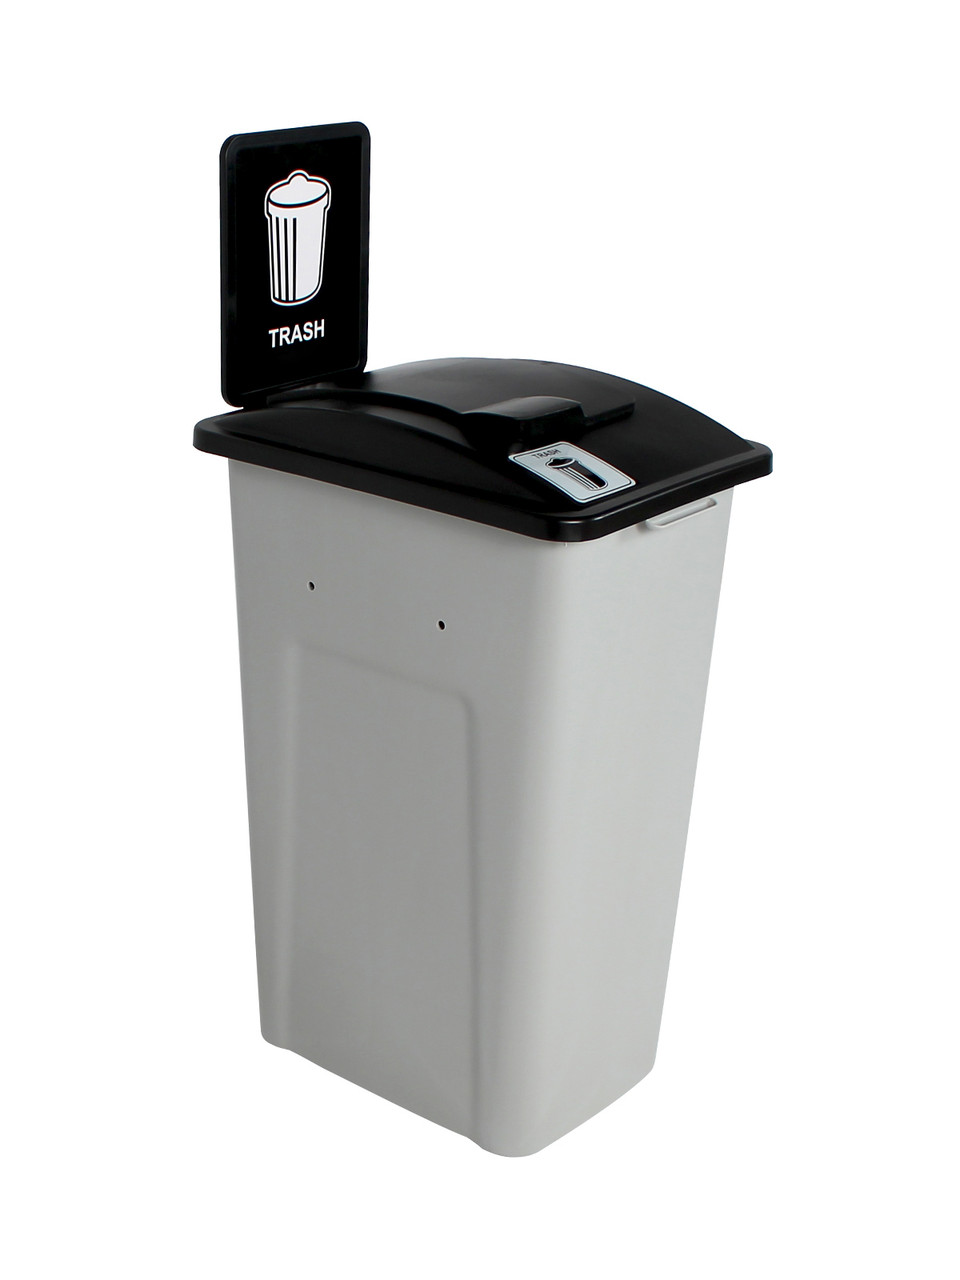 32 Gallon XL Simple Sort Trash Can with Sign (Trash, Lift Top)